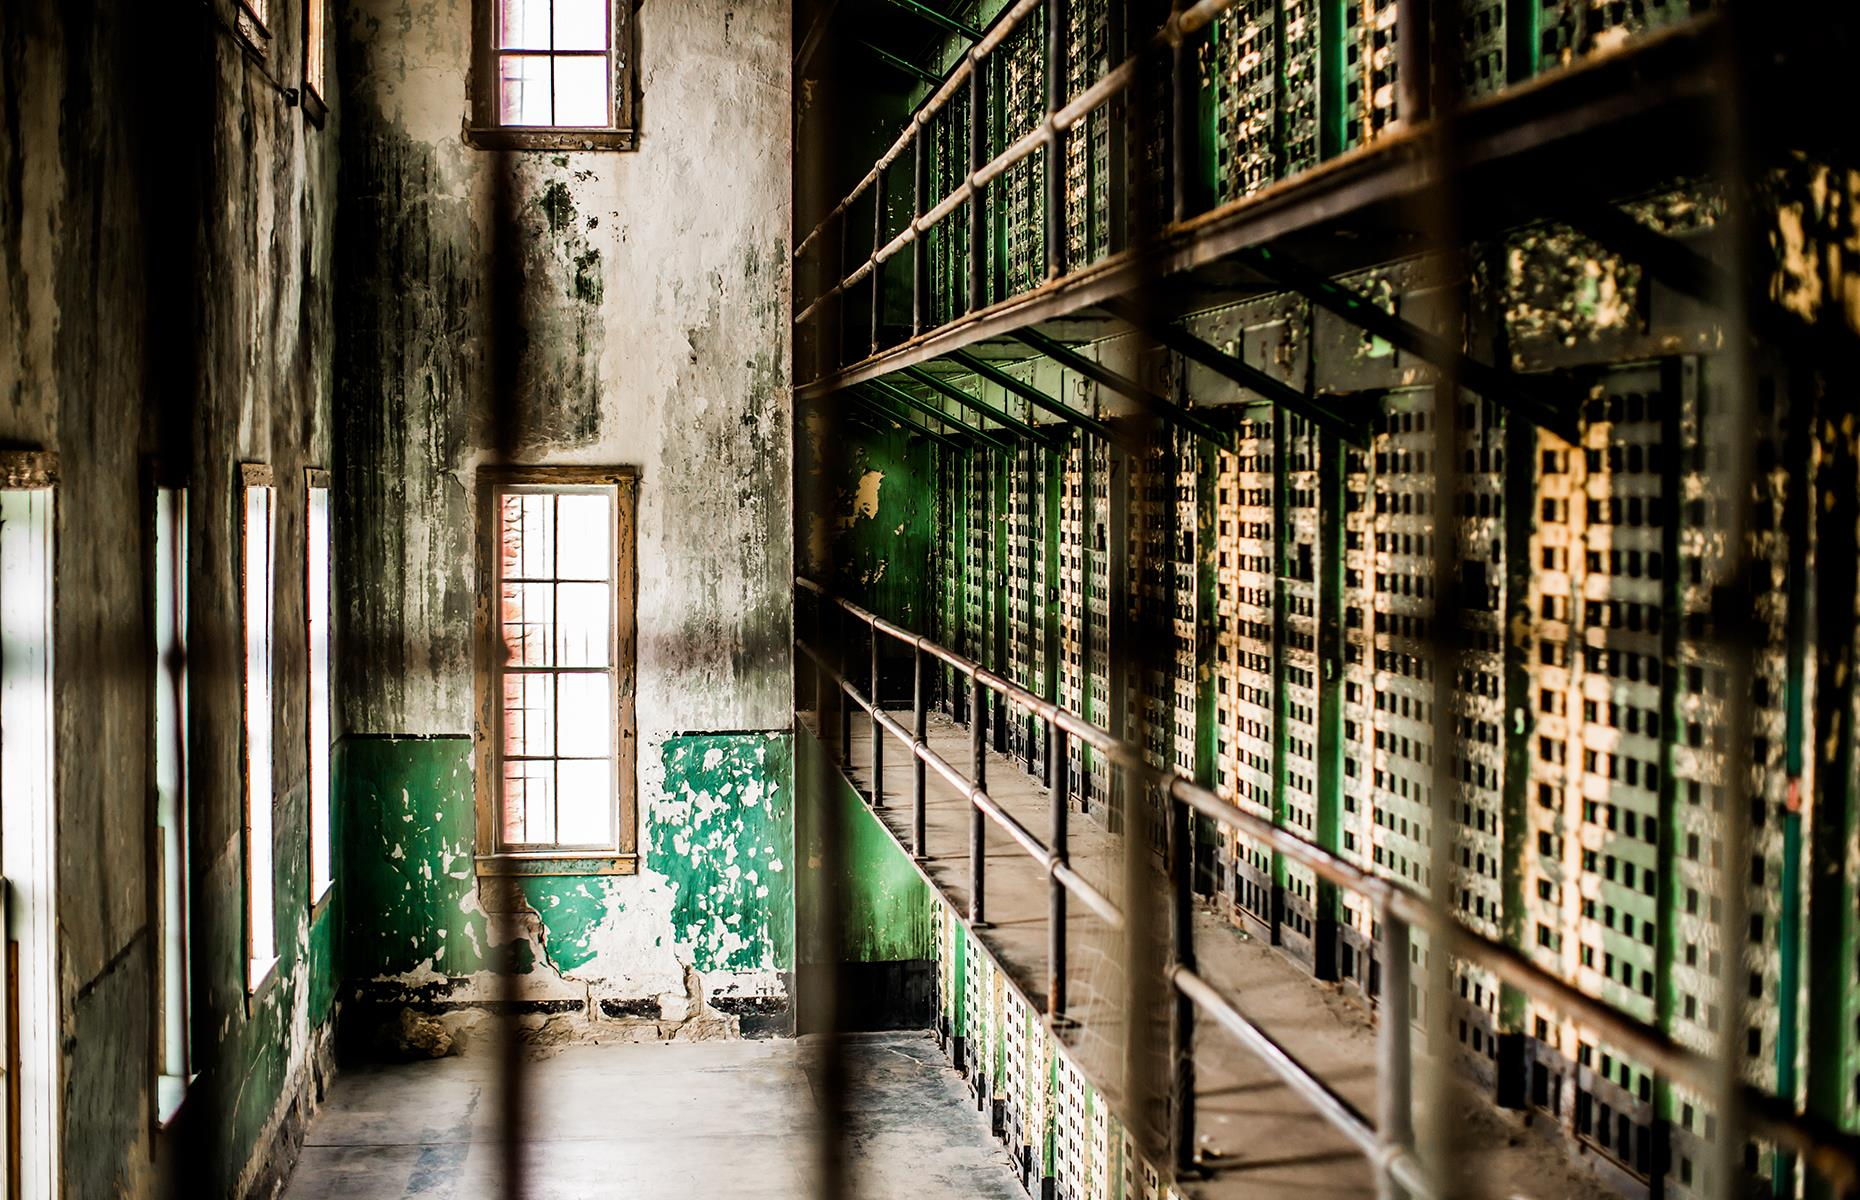 Slide 25 of 101: Old Idaho State Penitentiary was eventually shut down following major riots over the appalling living conditions. Now it's open daily to visitors, who can learn what life must have been like for the inmates on a guided tour.